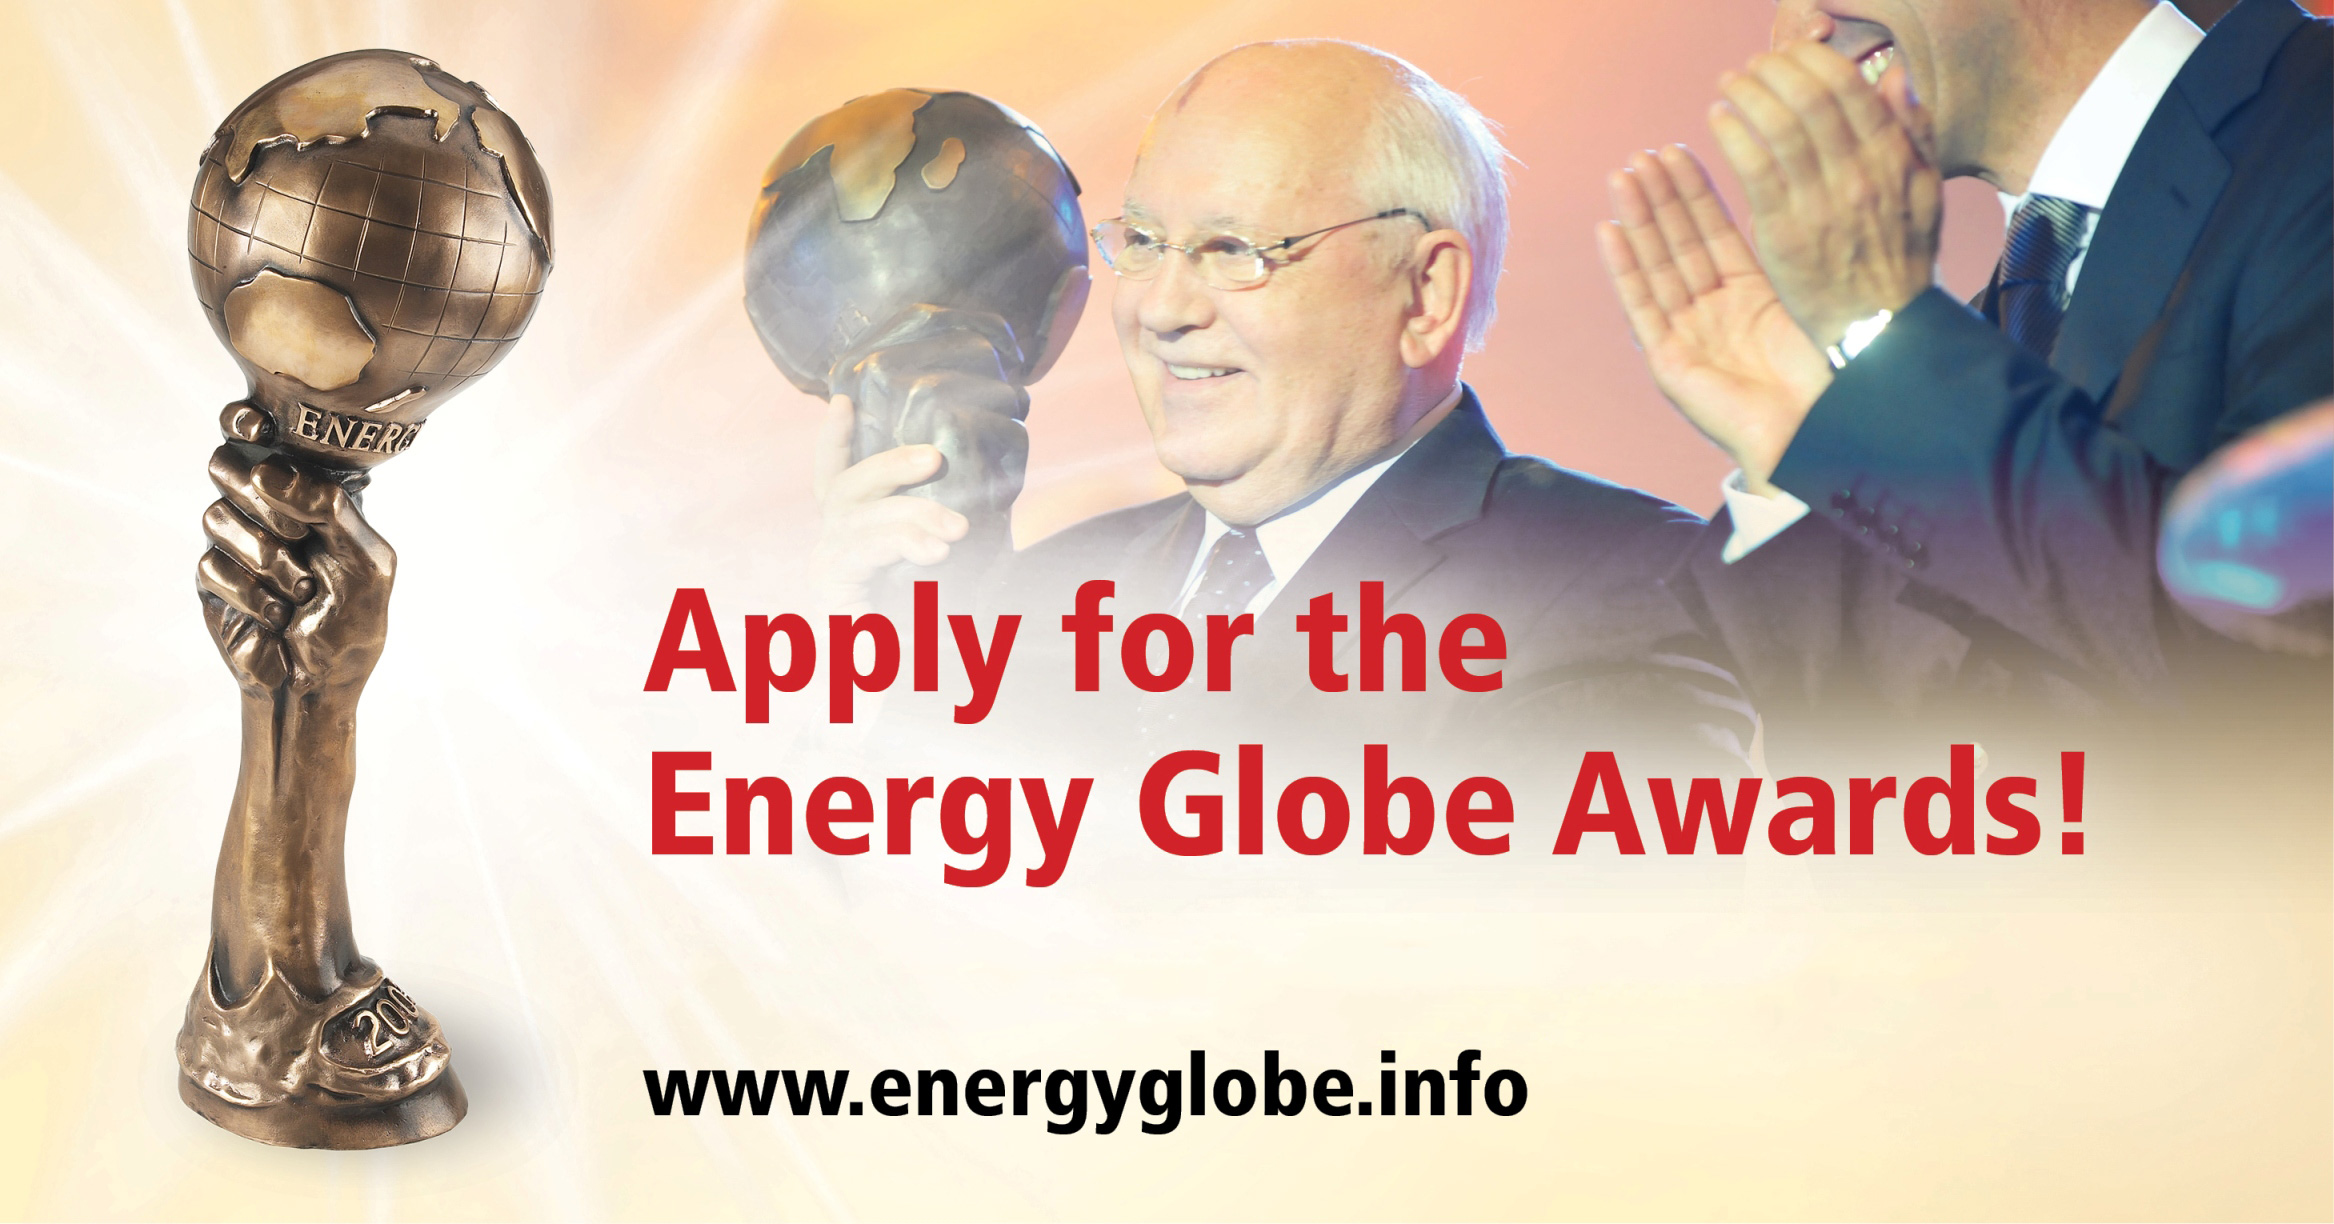 Energy Globe Awards competition 2015 – Win €10,000 and more